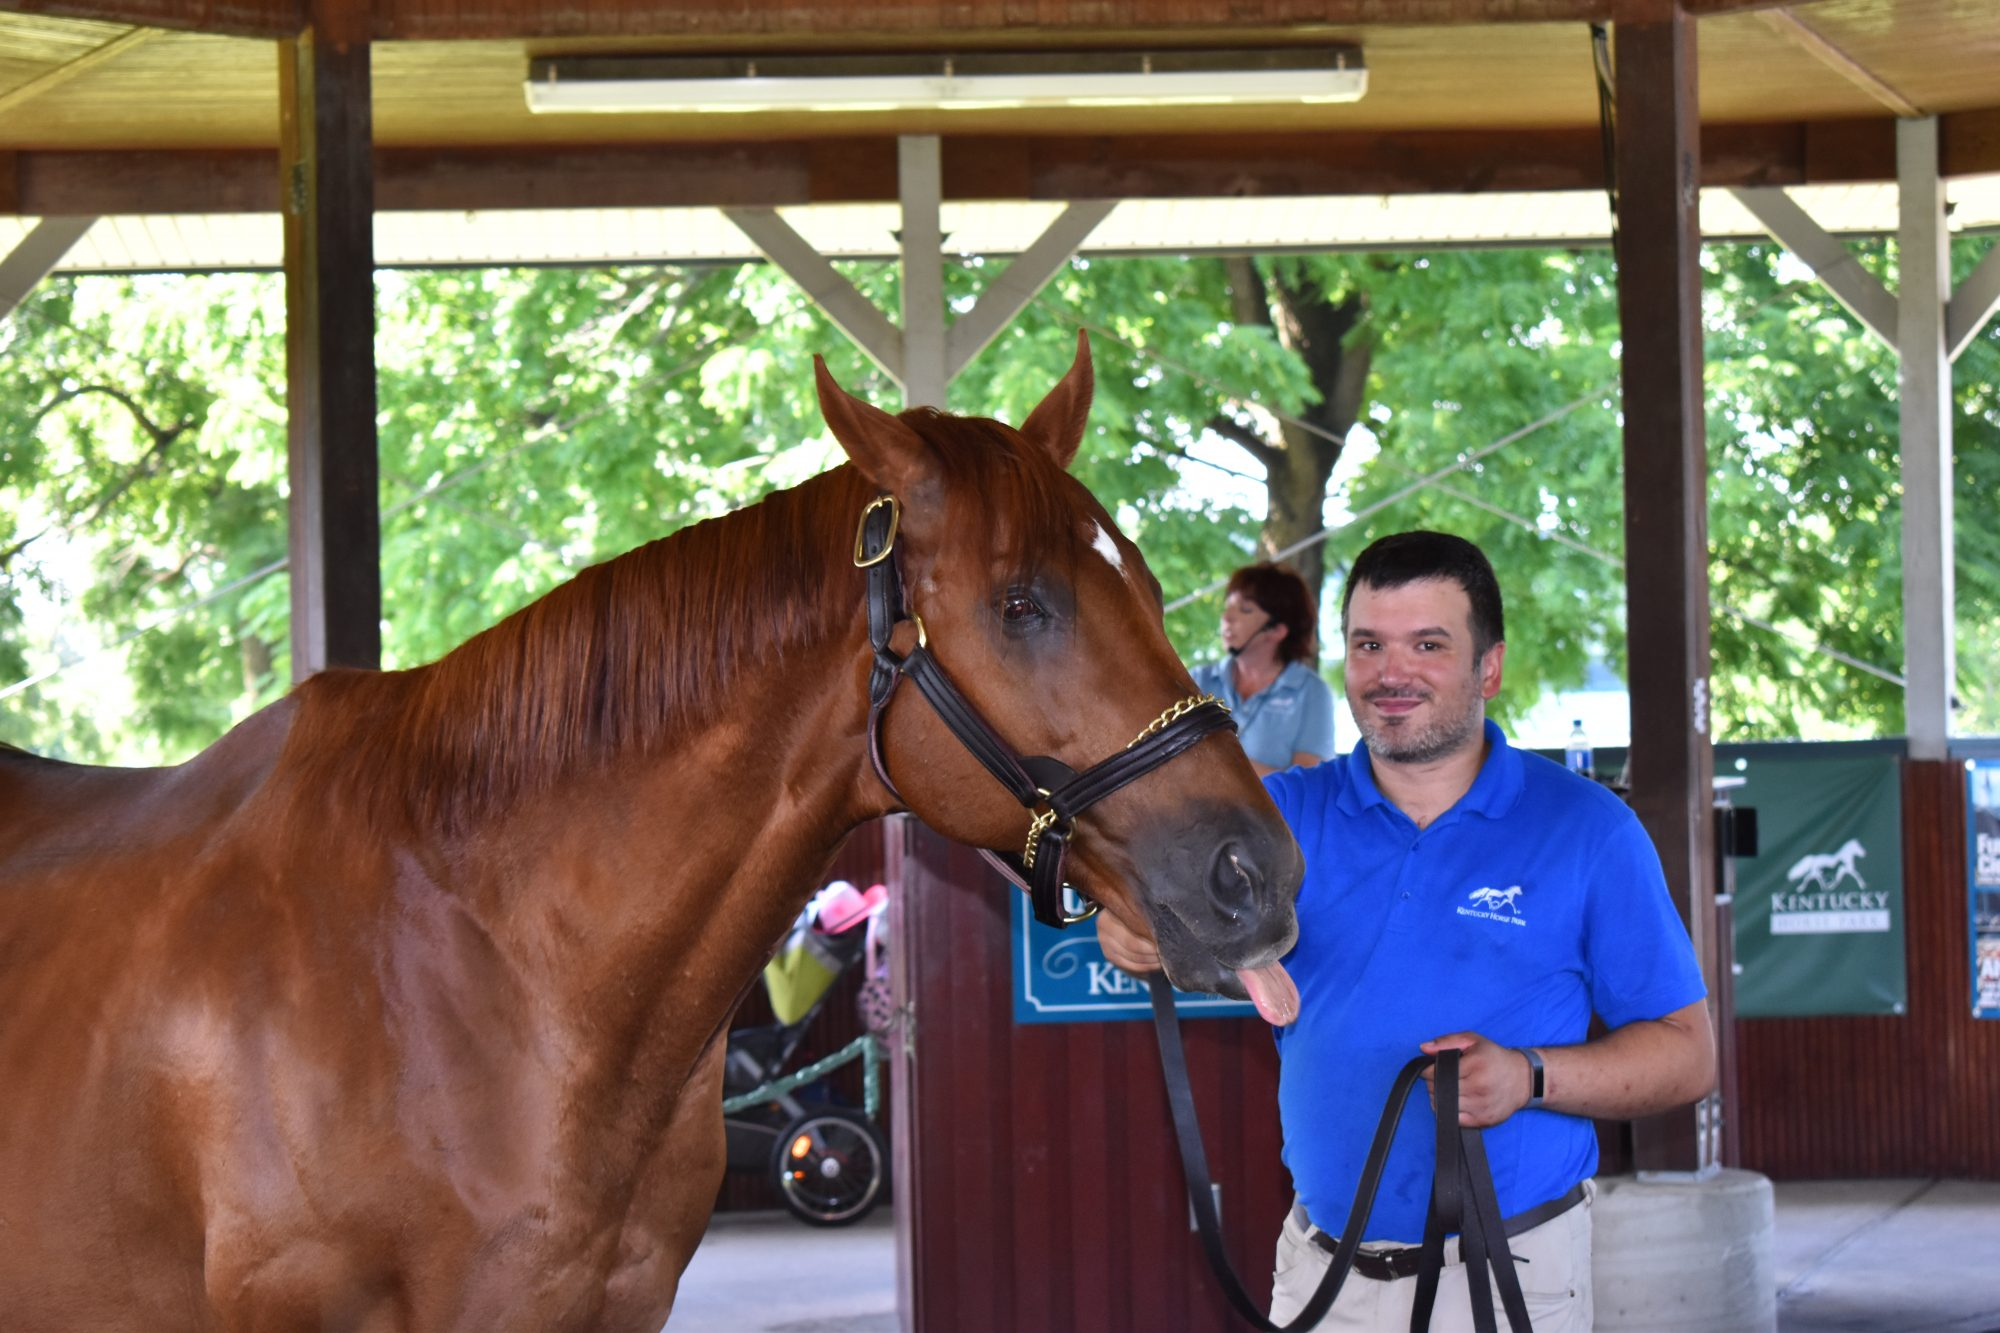 Plan your visit to Kentucky's Horse Park, America's only equine theme park